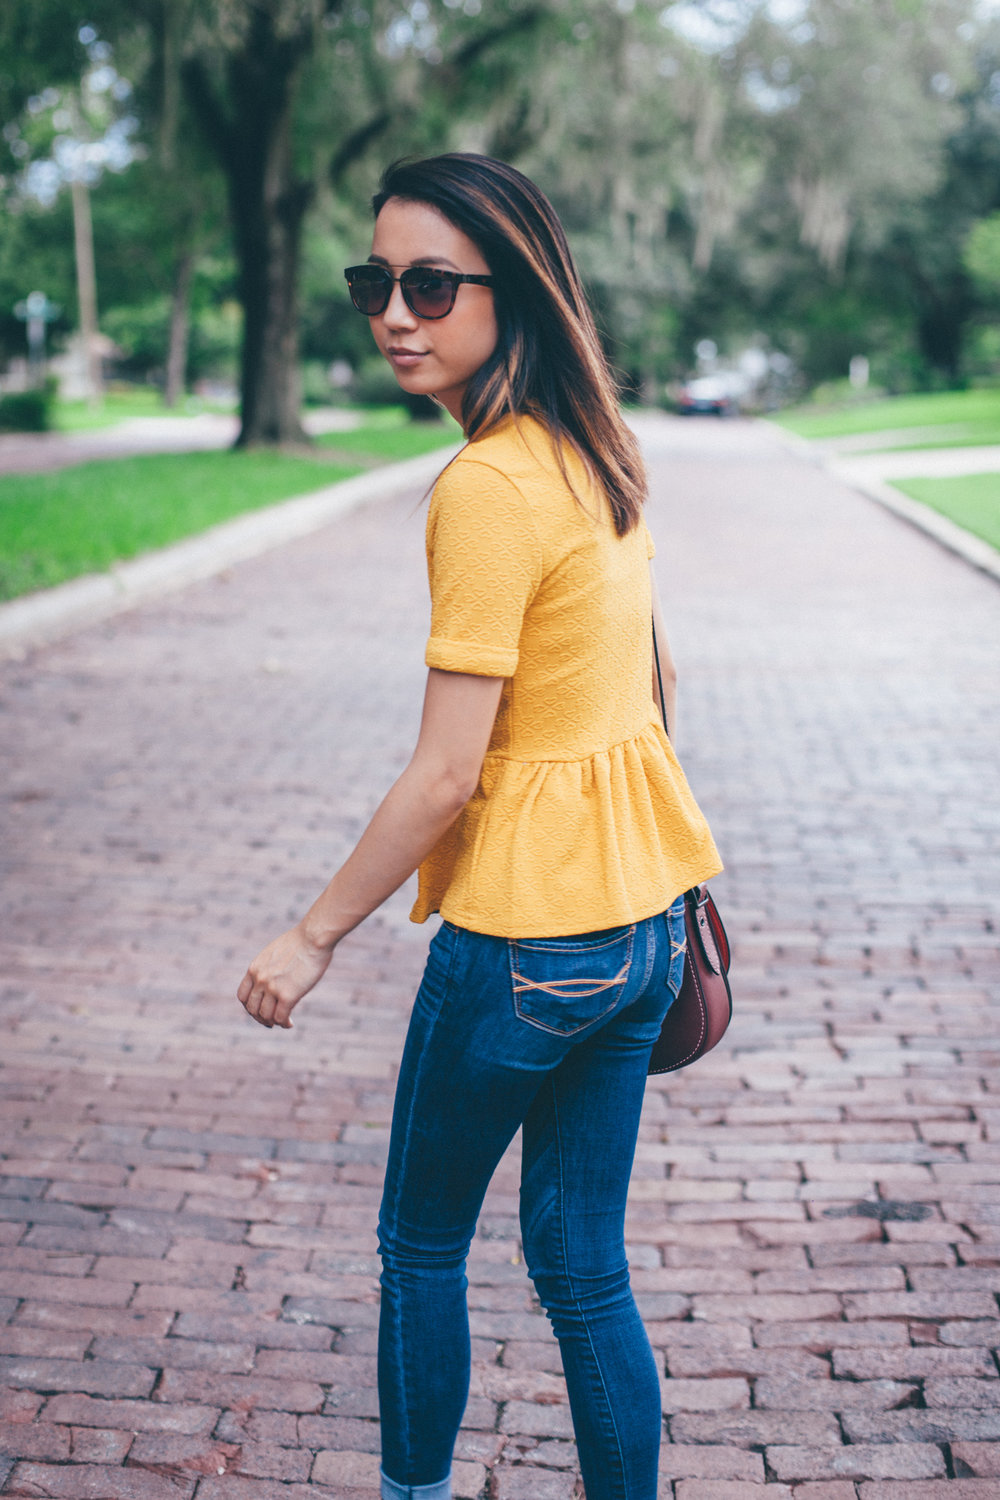 This Jenn Girl - Shein Yellow Peplum 3